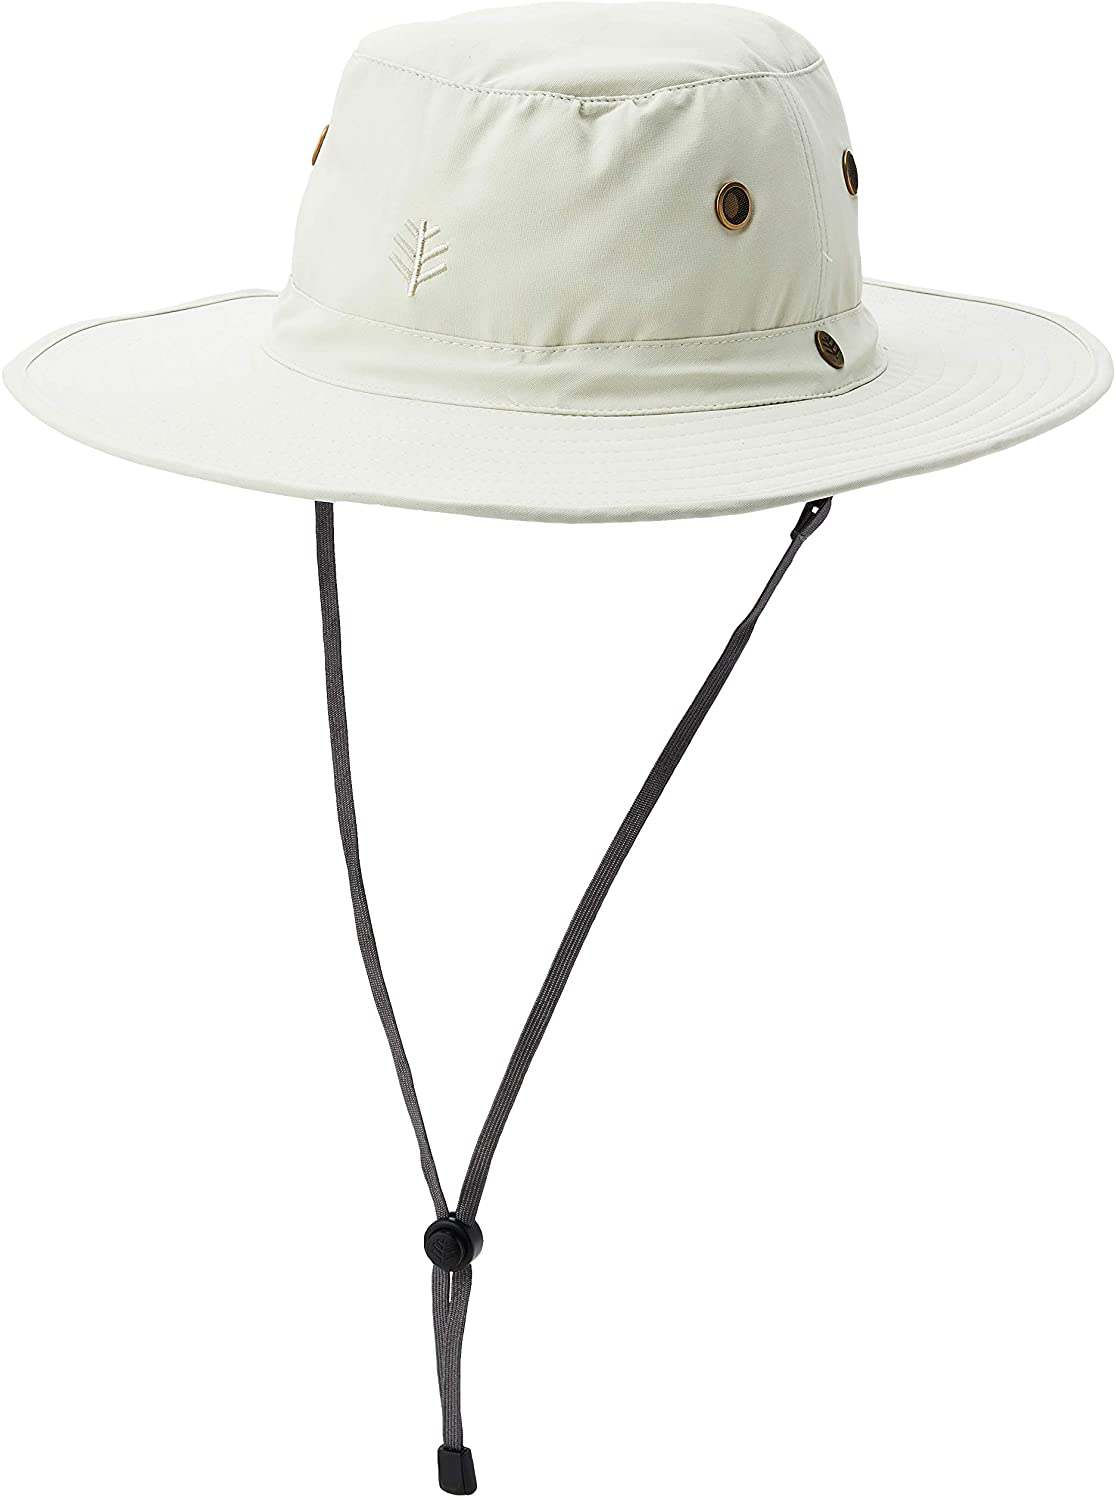 Coolibar UPF 50+ Men's Leo Shapeable Wide Brim Hat - Sun Protective